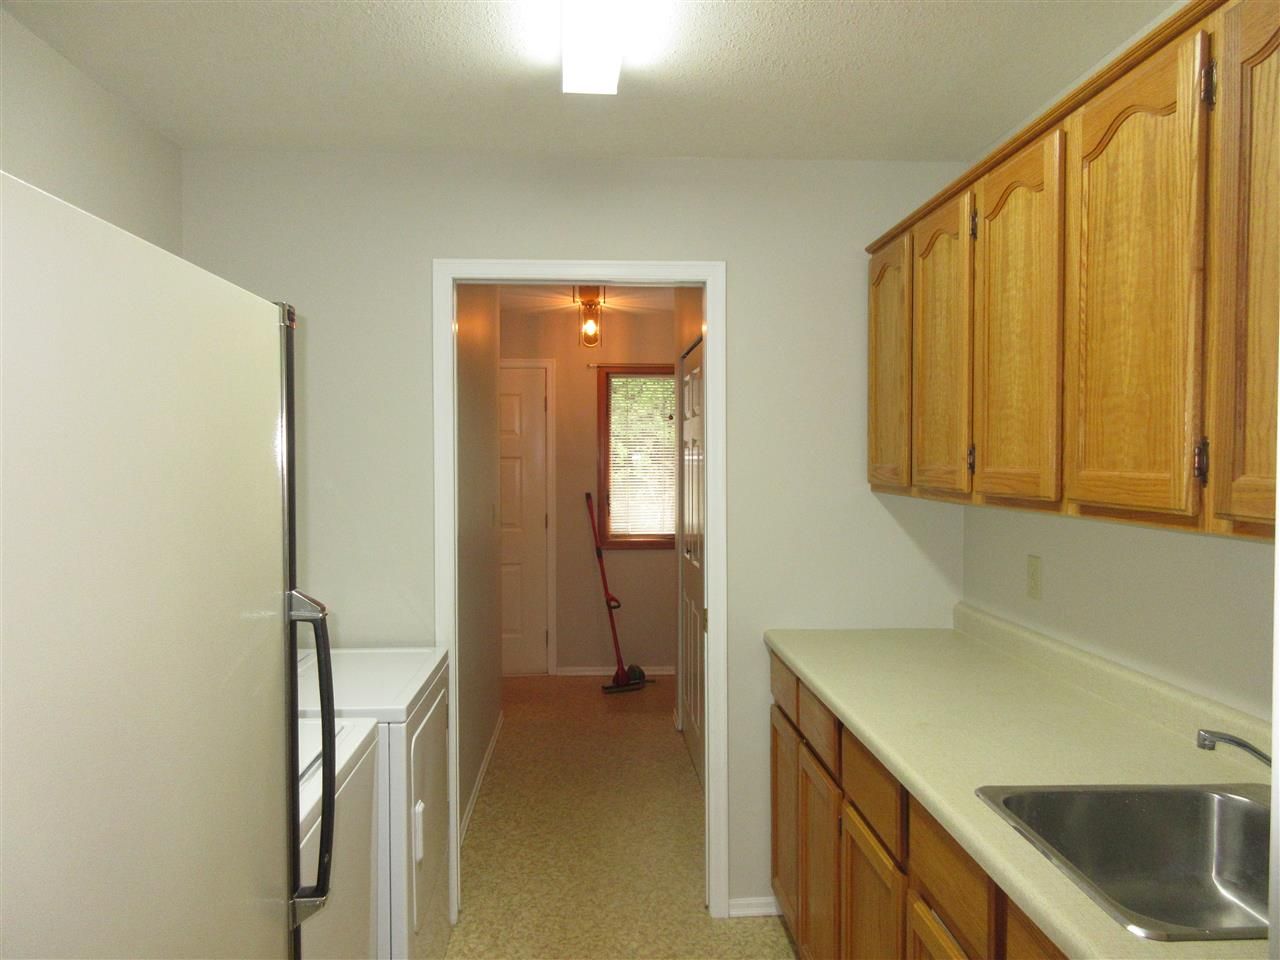 Photo 19: 45625 WORTHINGTON Place in Sardis: Sardis West Vedder Rd House for sale : MLS(r) # R2176017